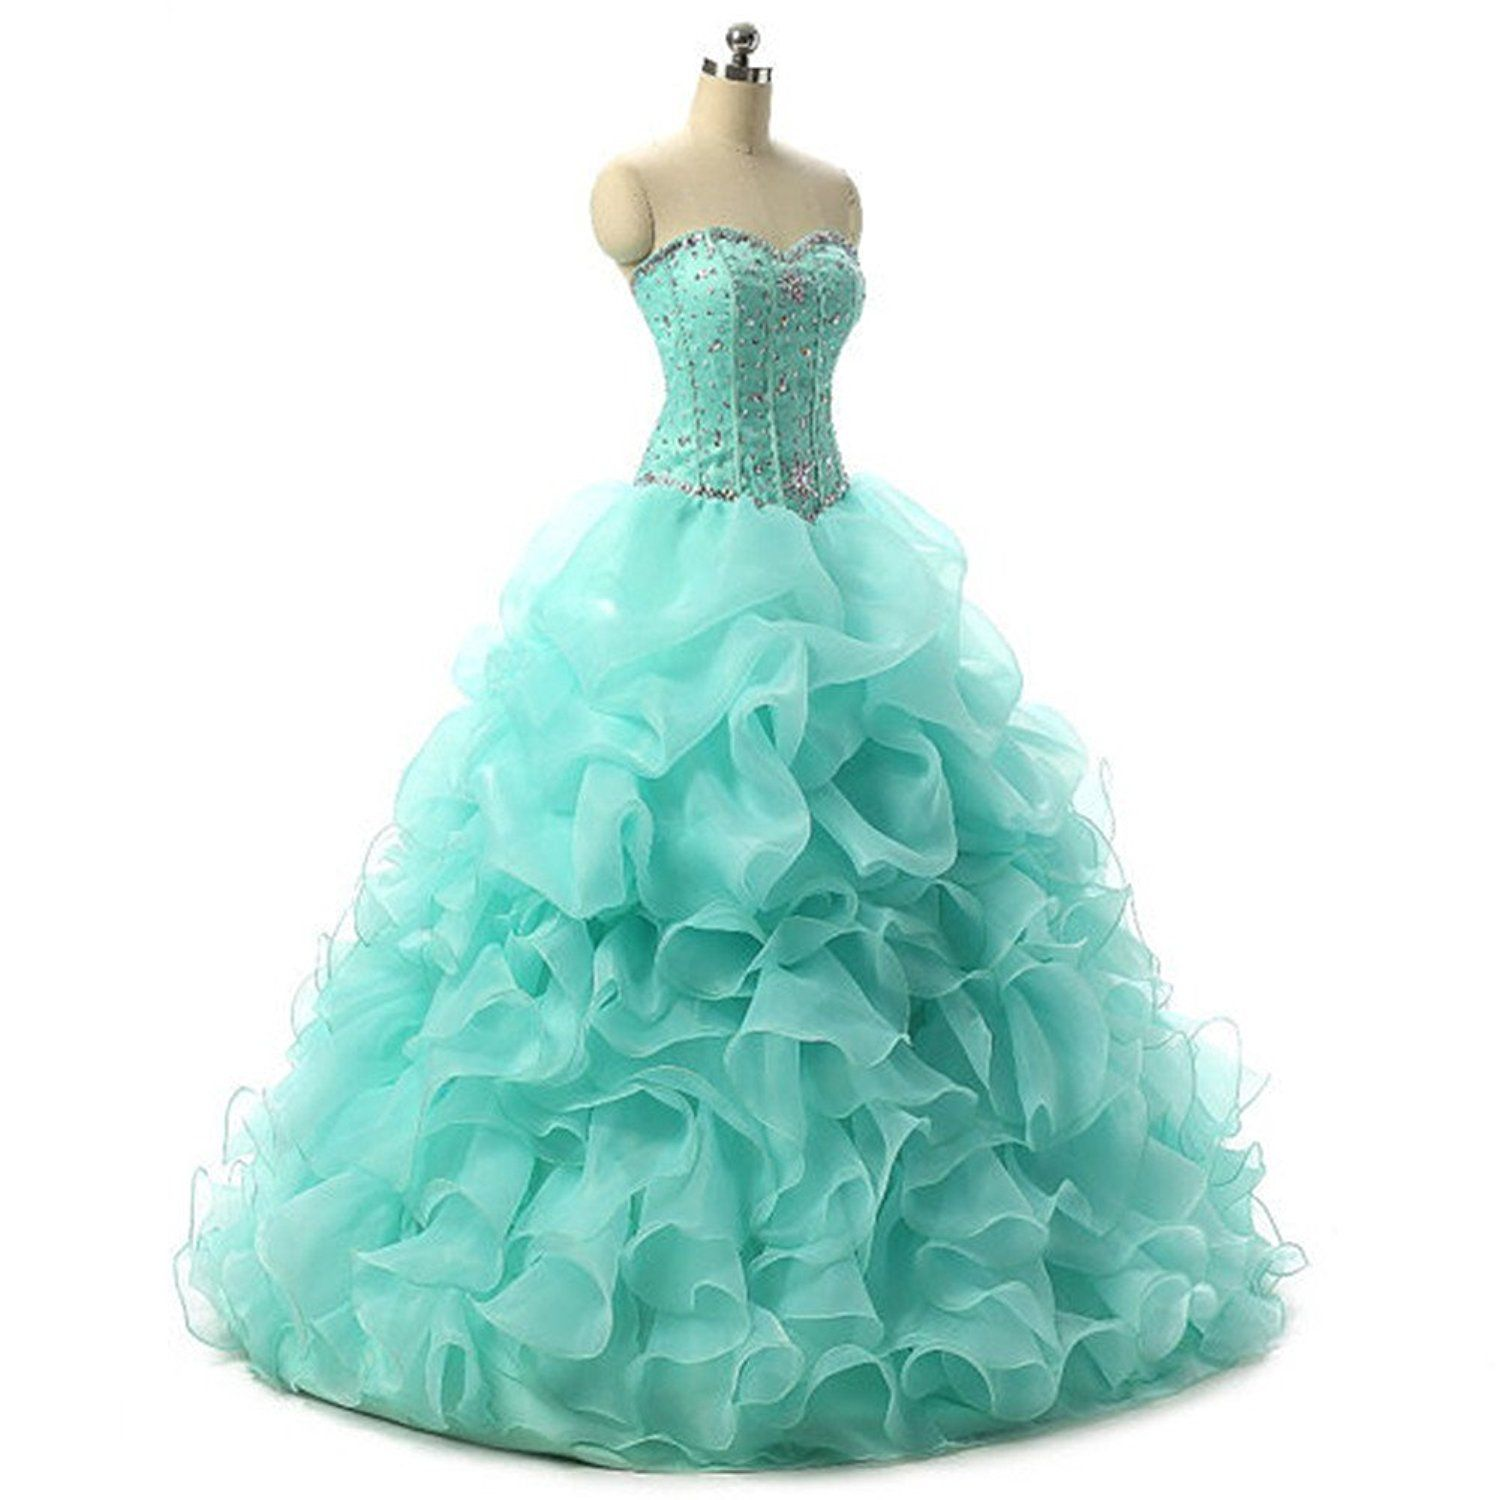 Crystal Dresses Women\'s Sweetheart Organza Prom Dresses Ball Gowns ...